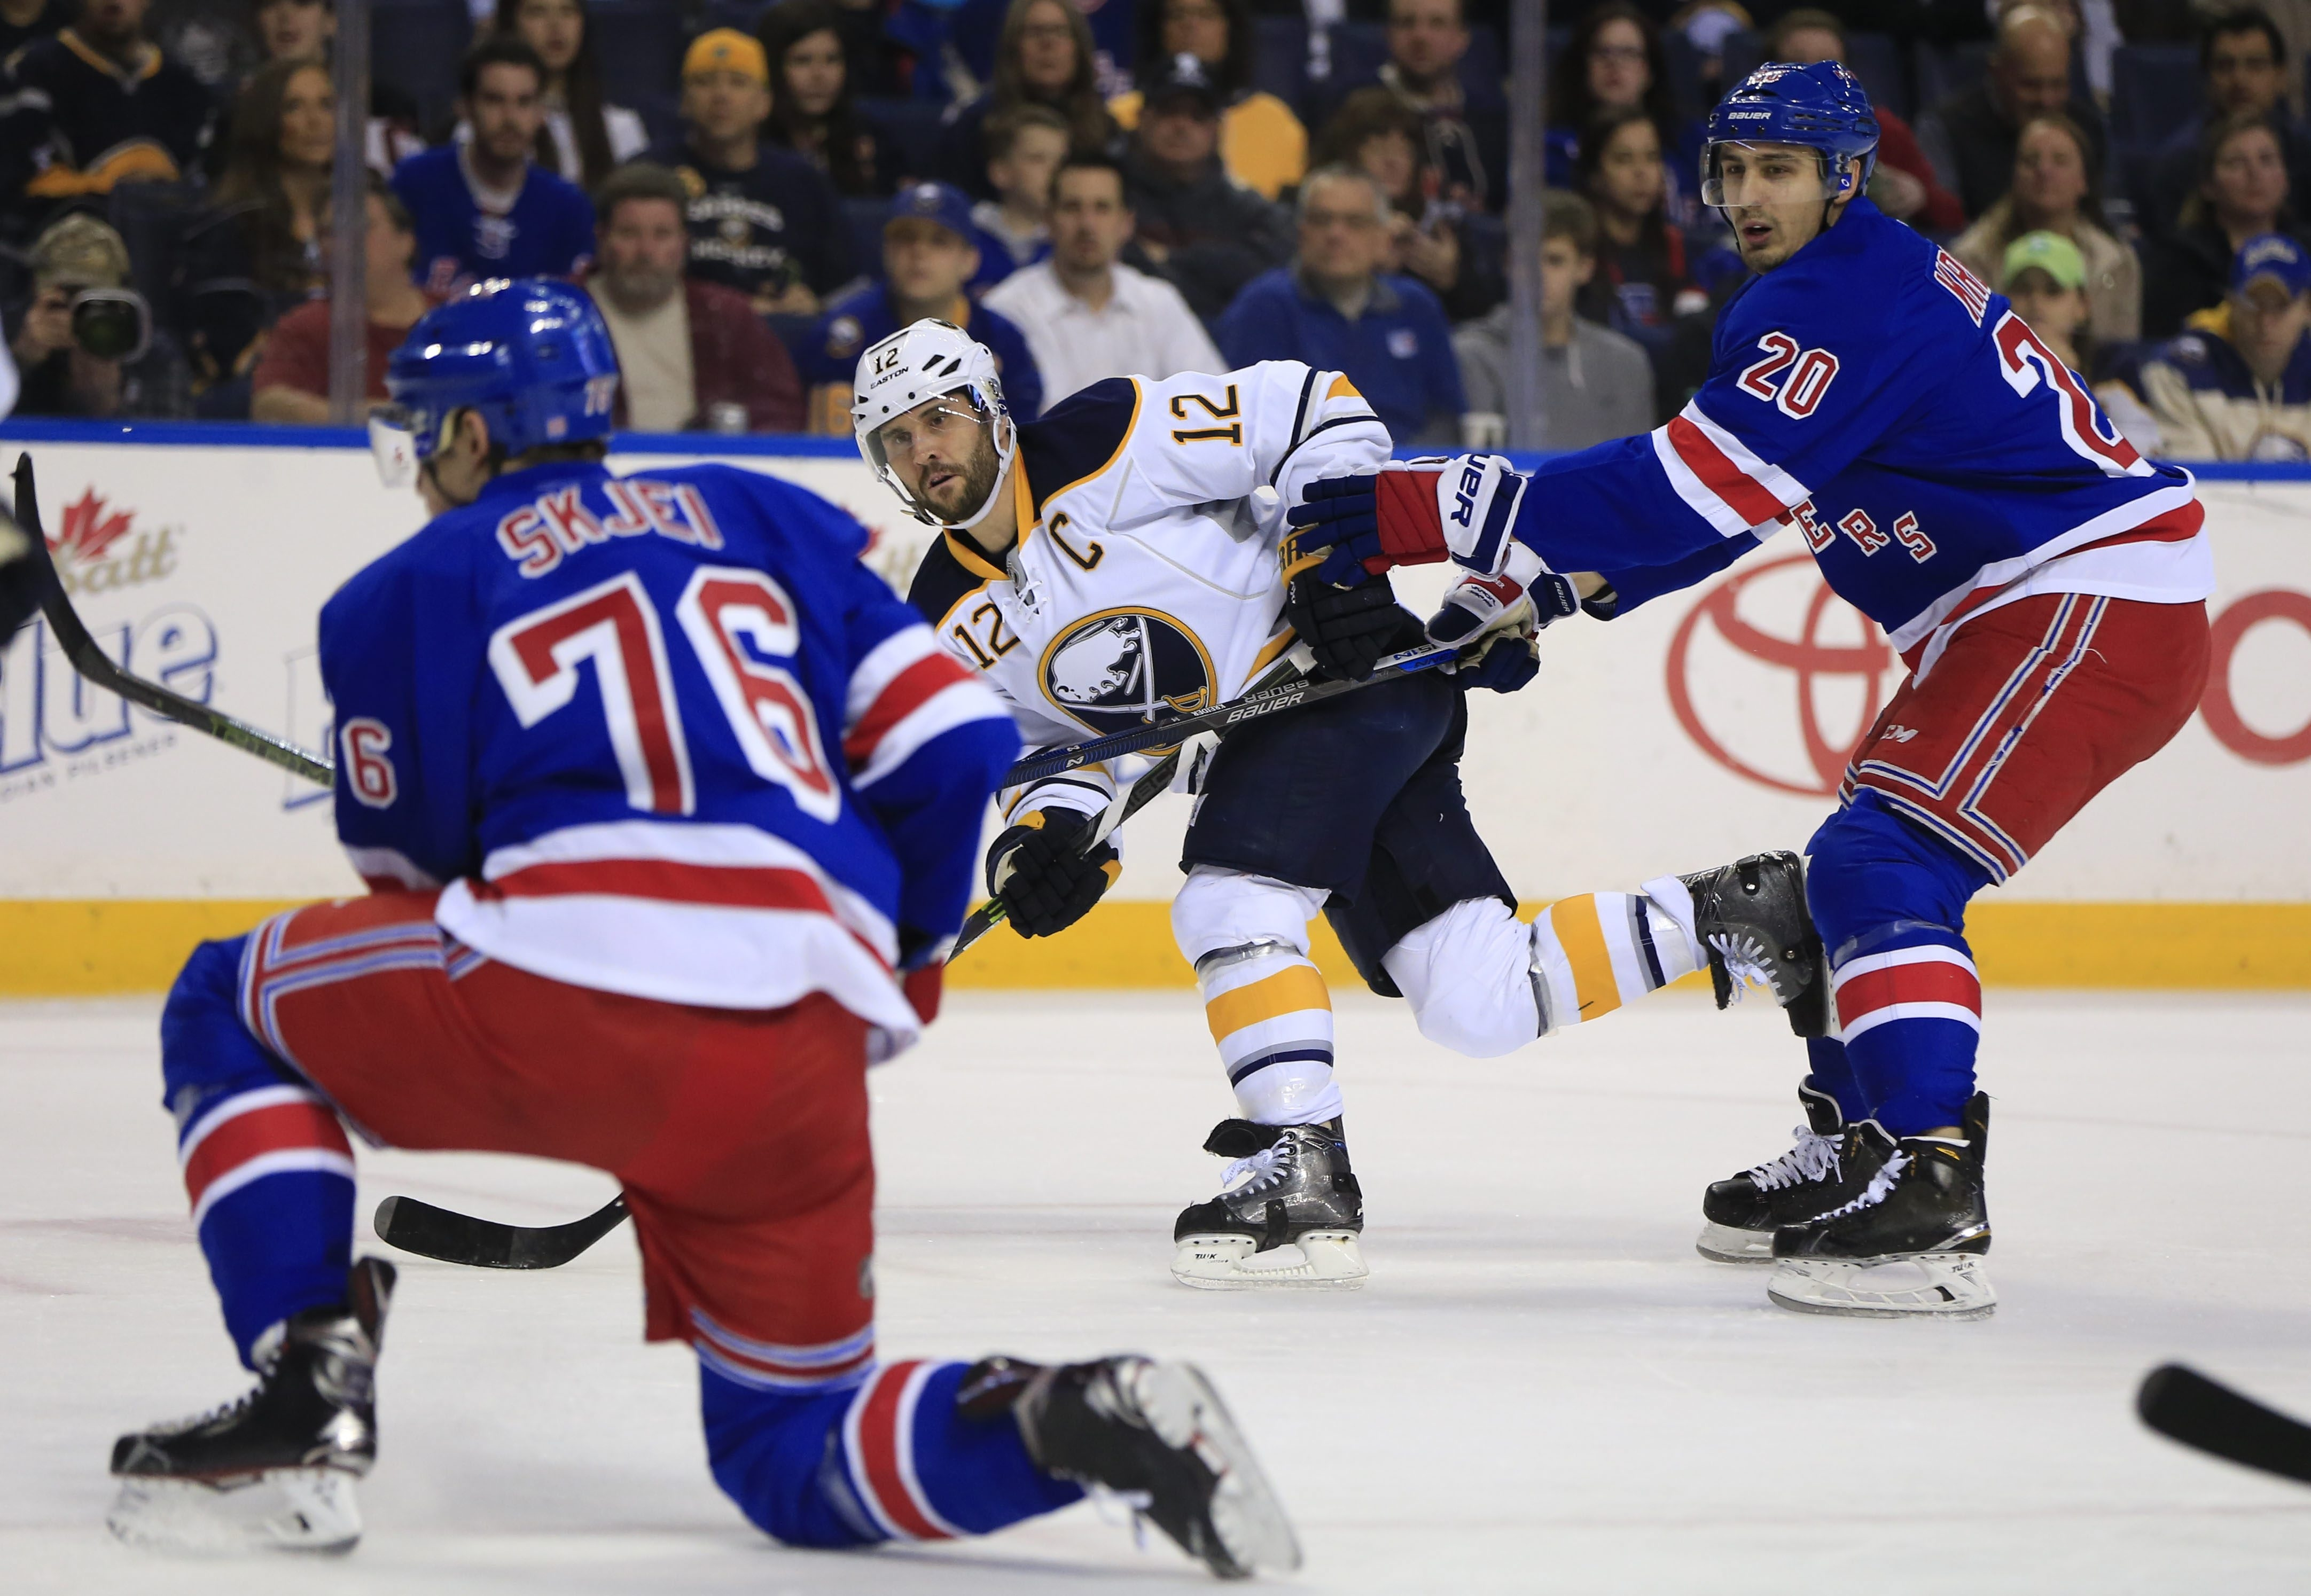 Buffalo Sabres captain Brian Gionta shoots on the New York Rangers' net during first-period action at First Niagara Center on March 8, 2016.